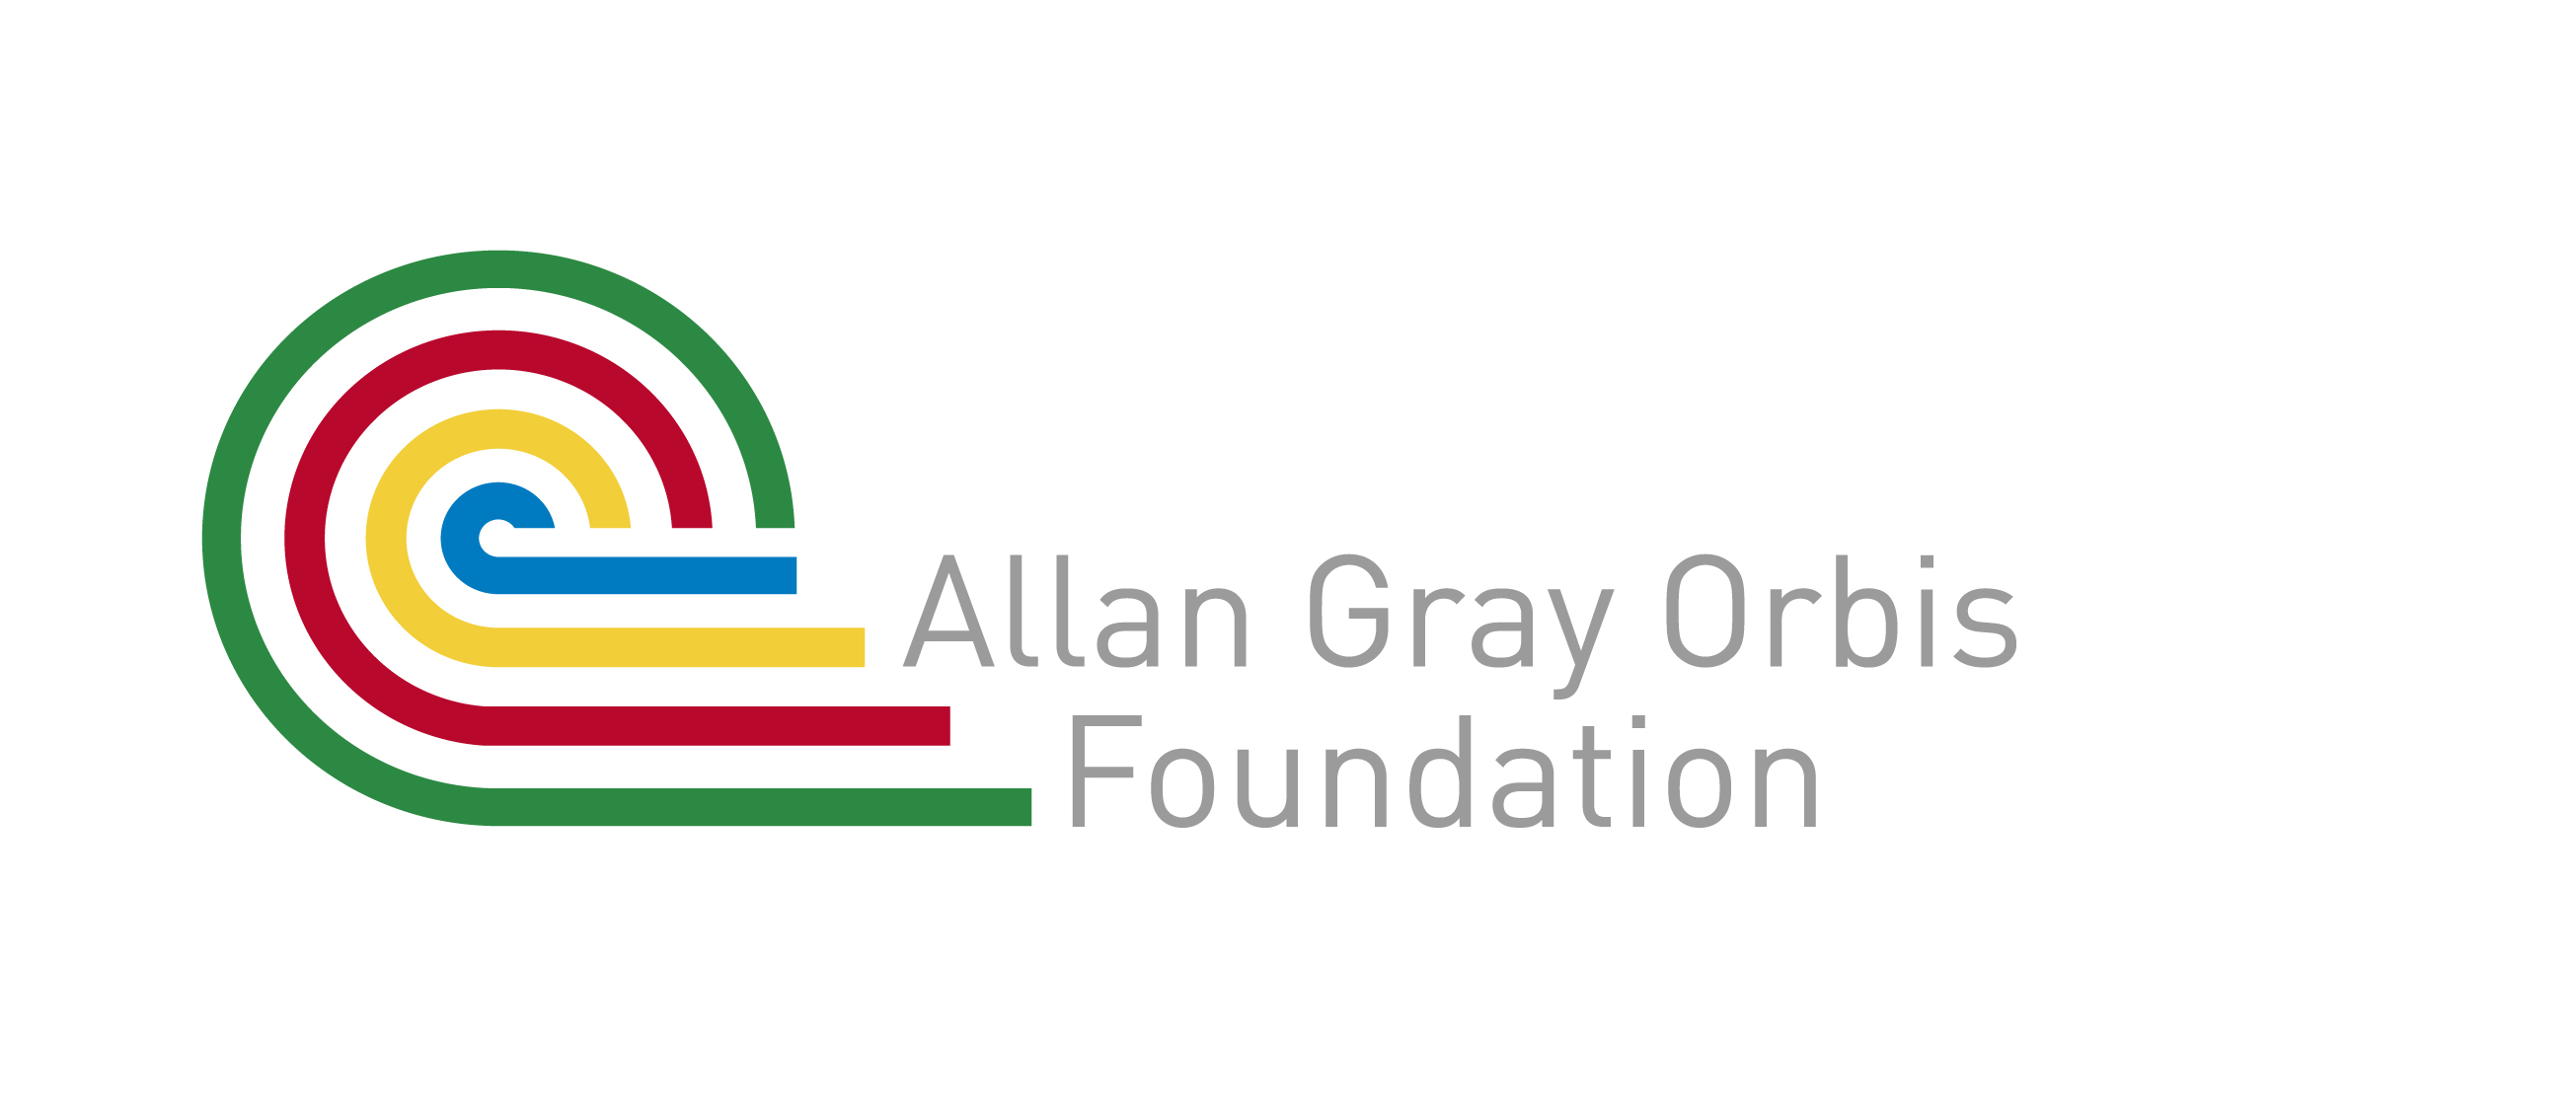 The Allan Gray Orbis Foundation – Fellowship Application Form 2018 for Namibian learners currently in Grade 12